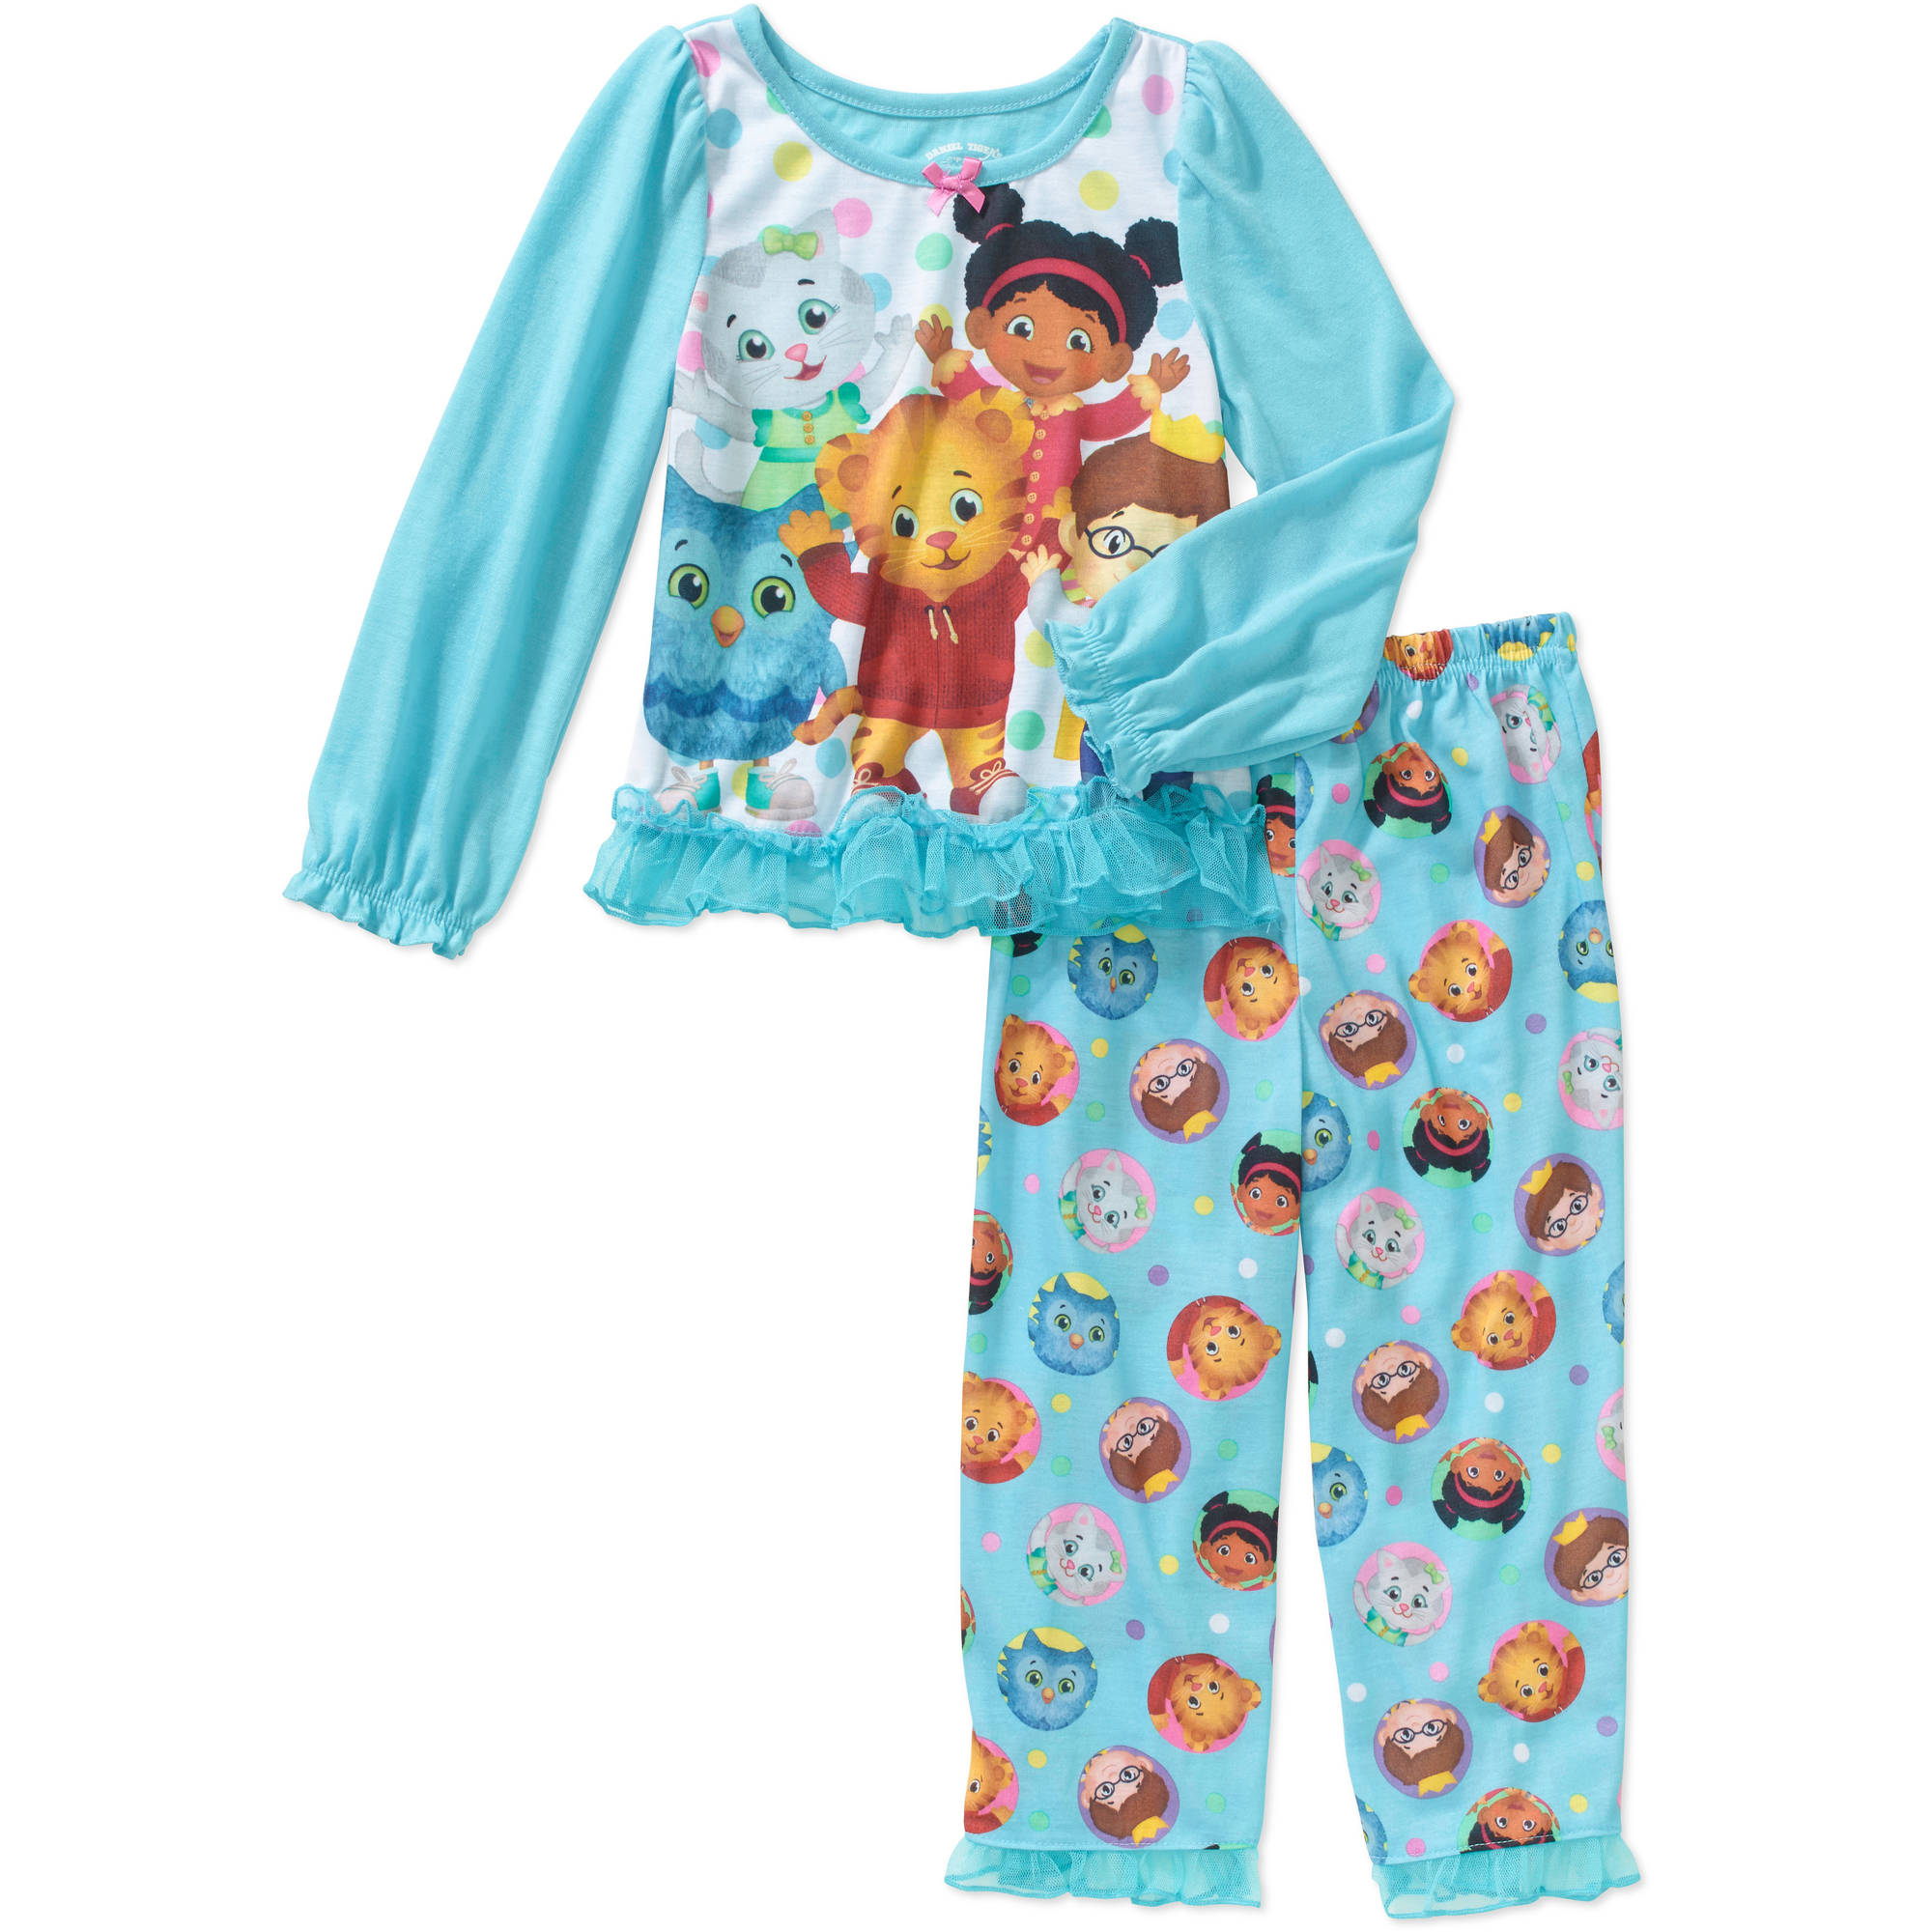 Daniel Tiger Toddler Girls' Pajamas 2-Piece Set